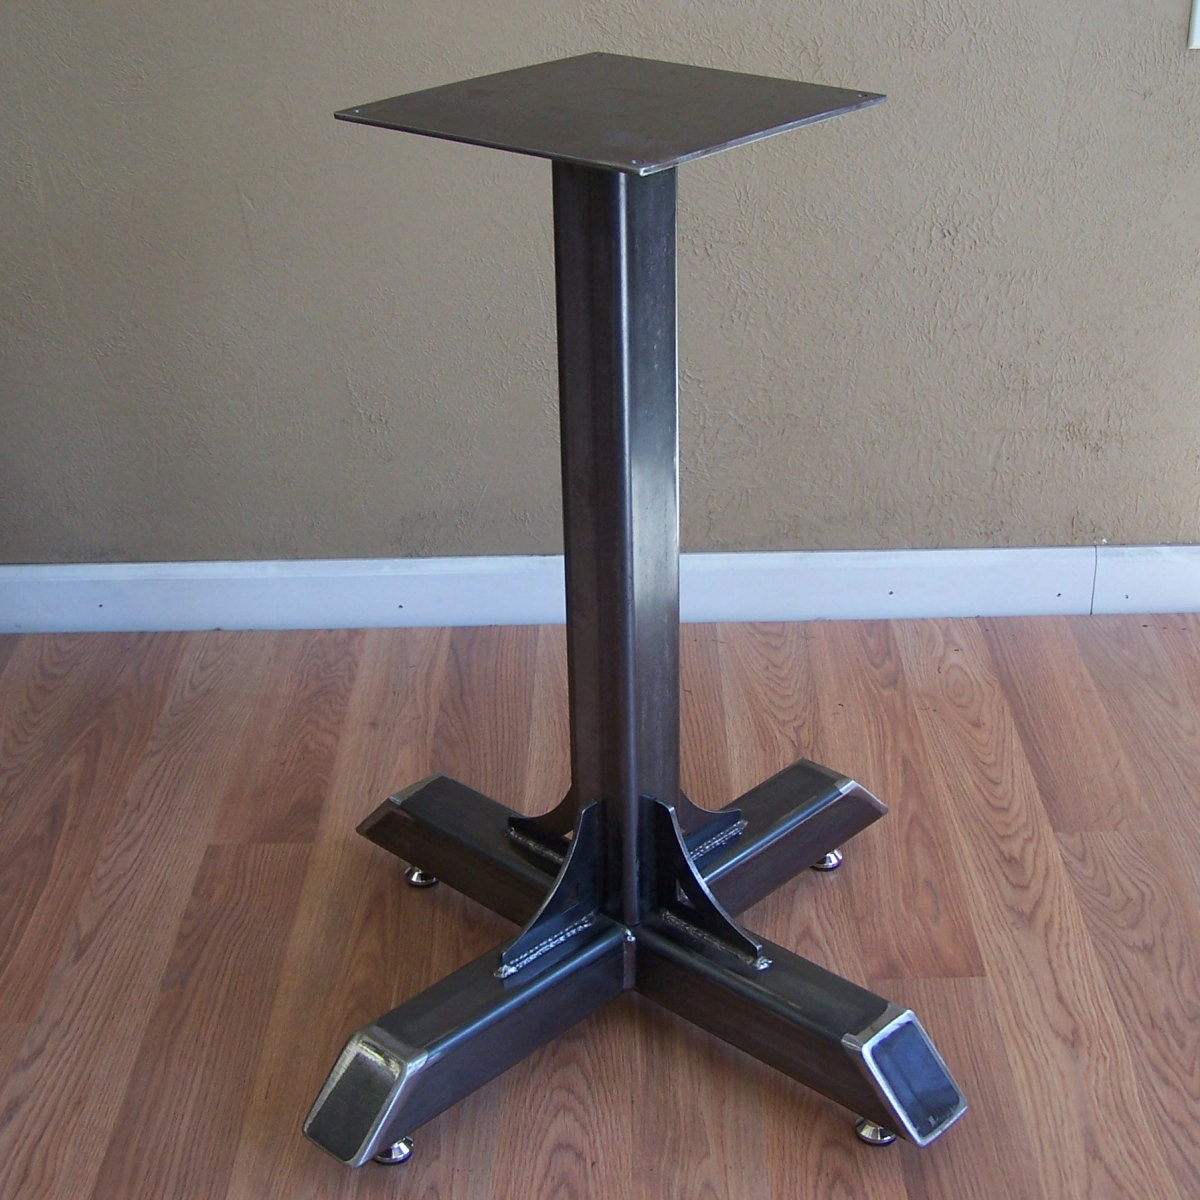 Bistro cafe table base heavy duty industrial steel pedestal Metal table base